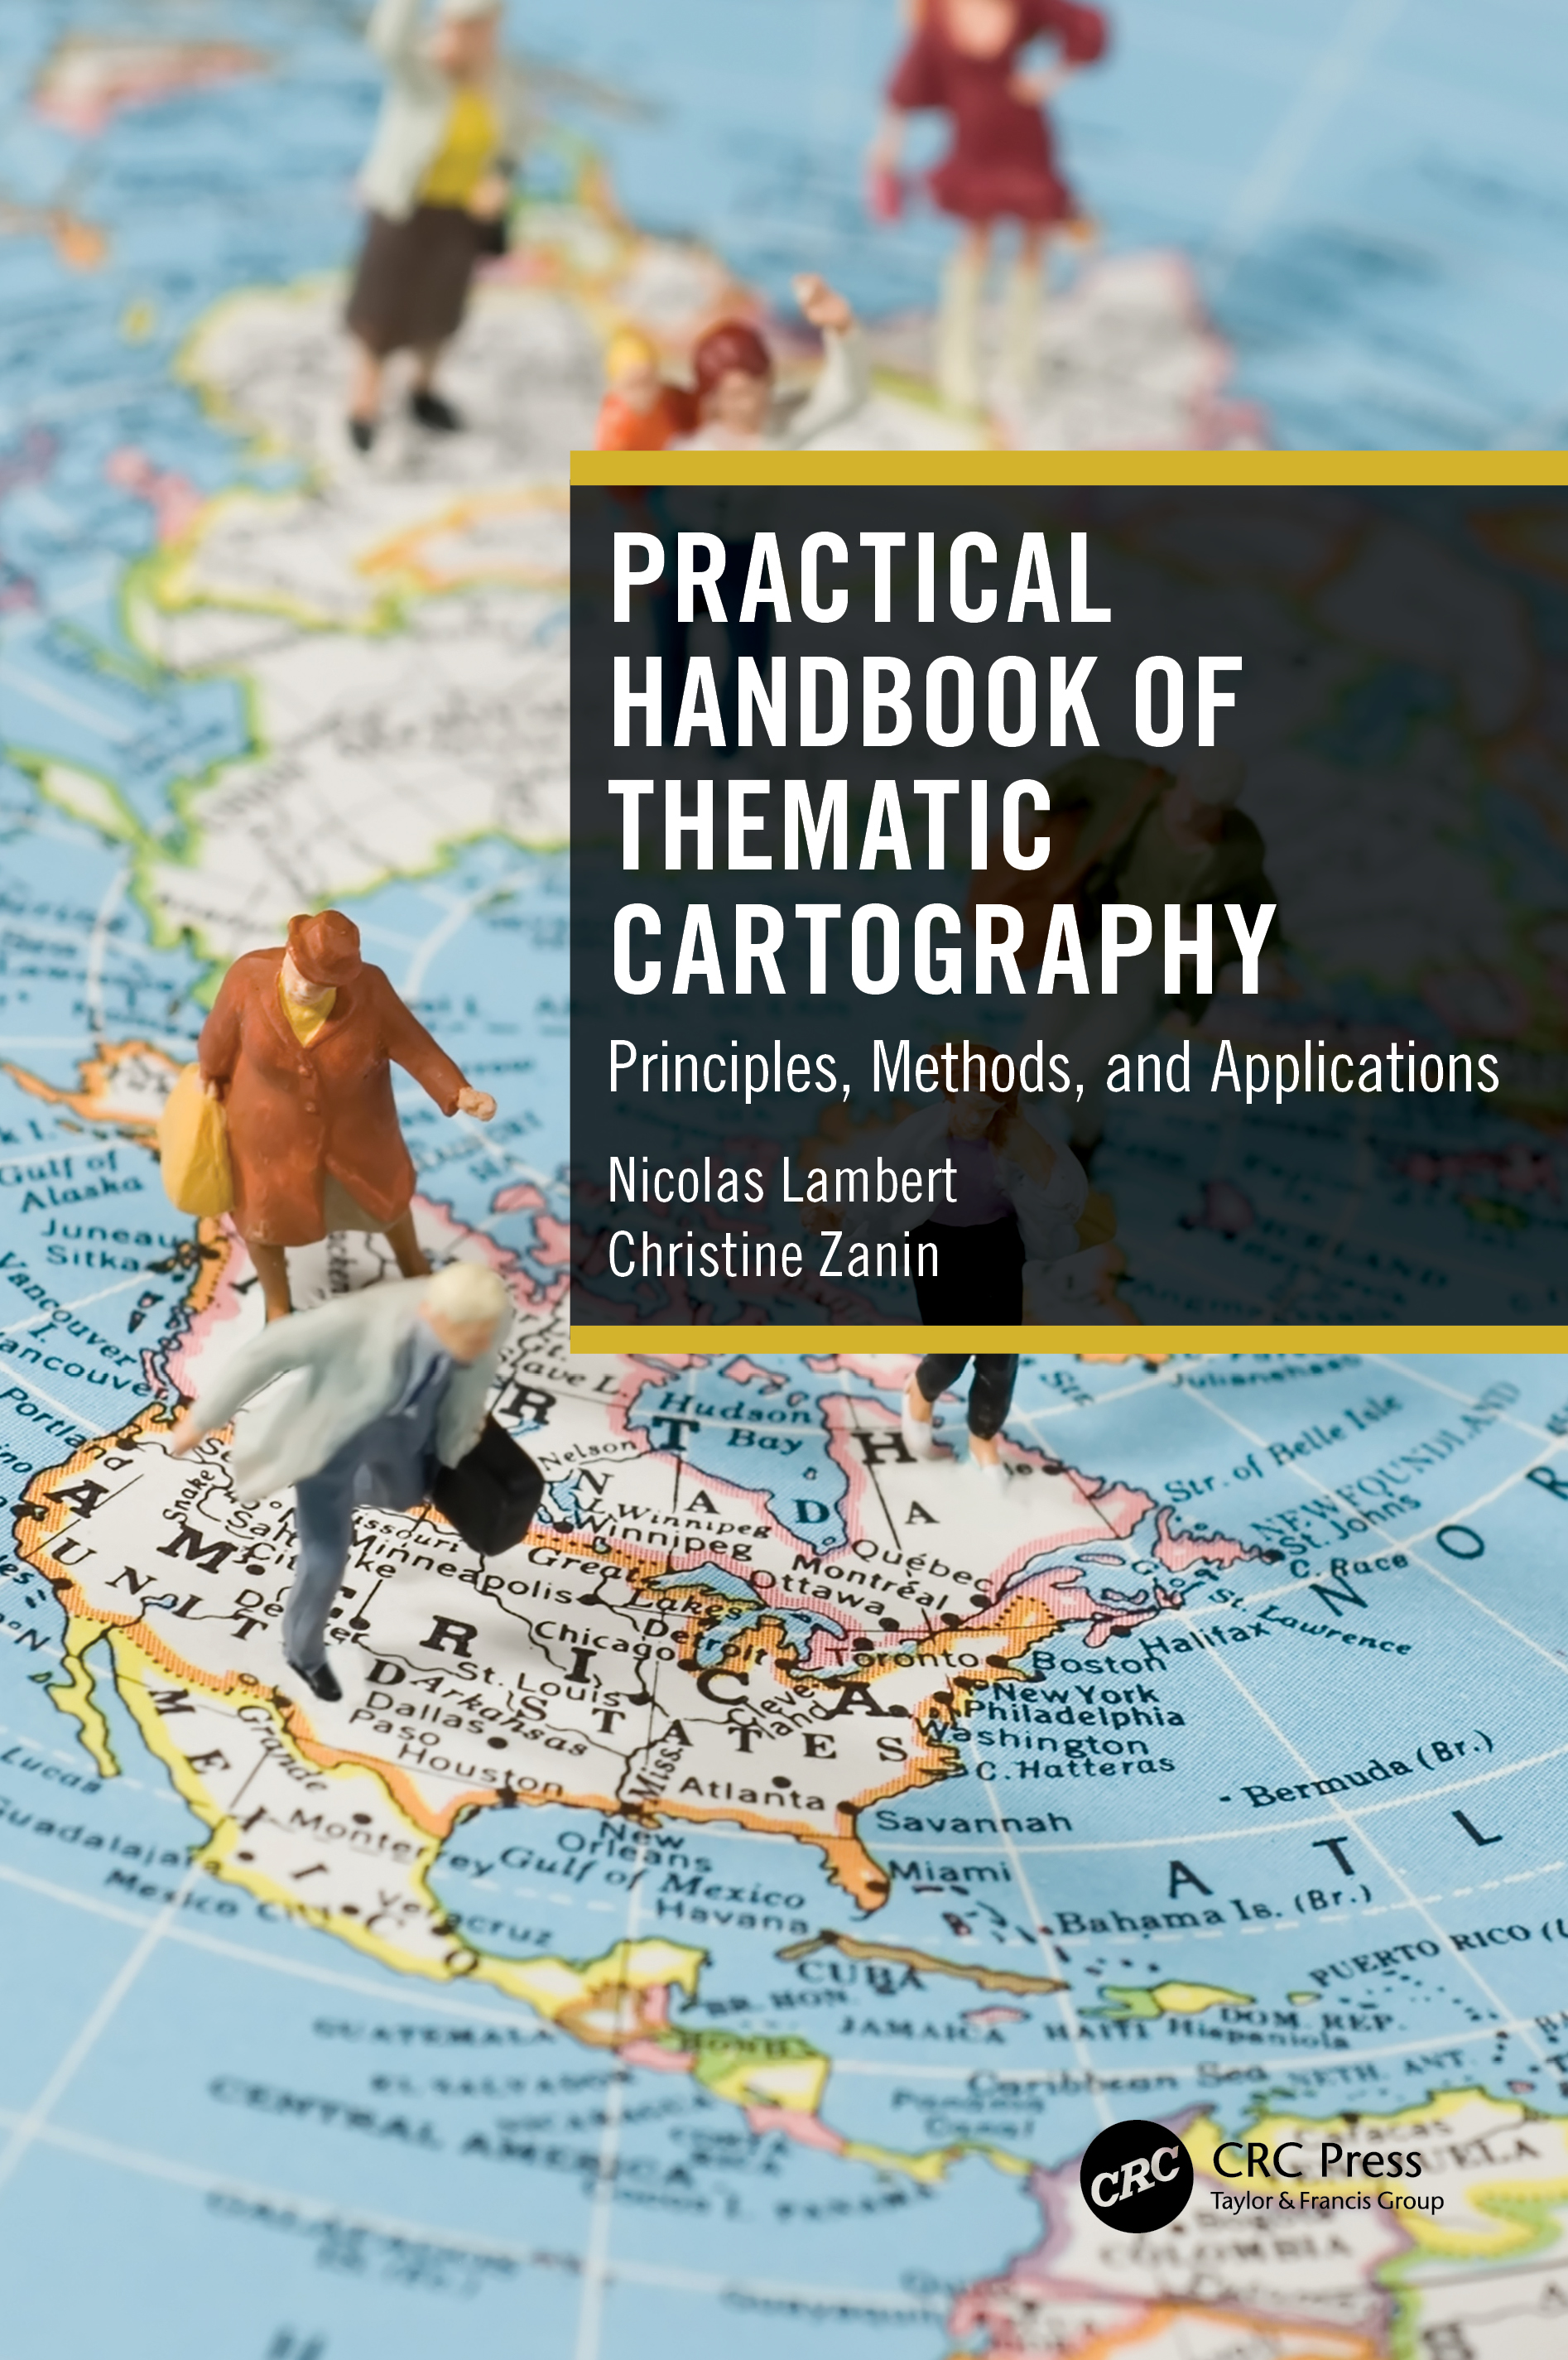 Practical Handbook of Thematic Cartography: Principles, Methods, and Applications book cover